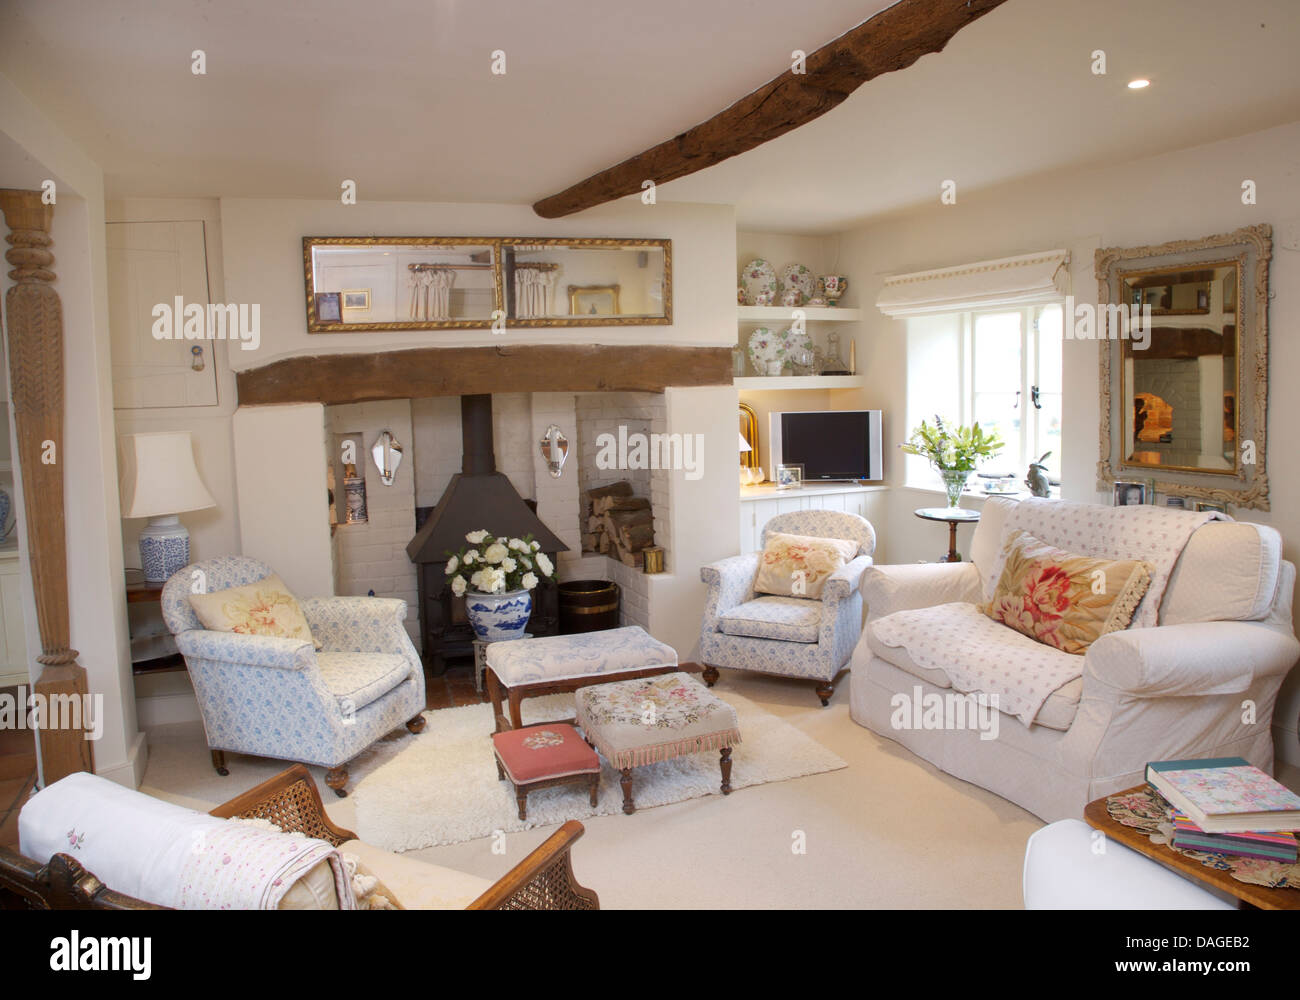 Cottage Living Room With Fireplace cottage fireplaces stoves traditional stock photos & cottage